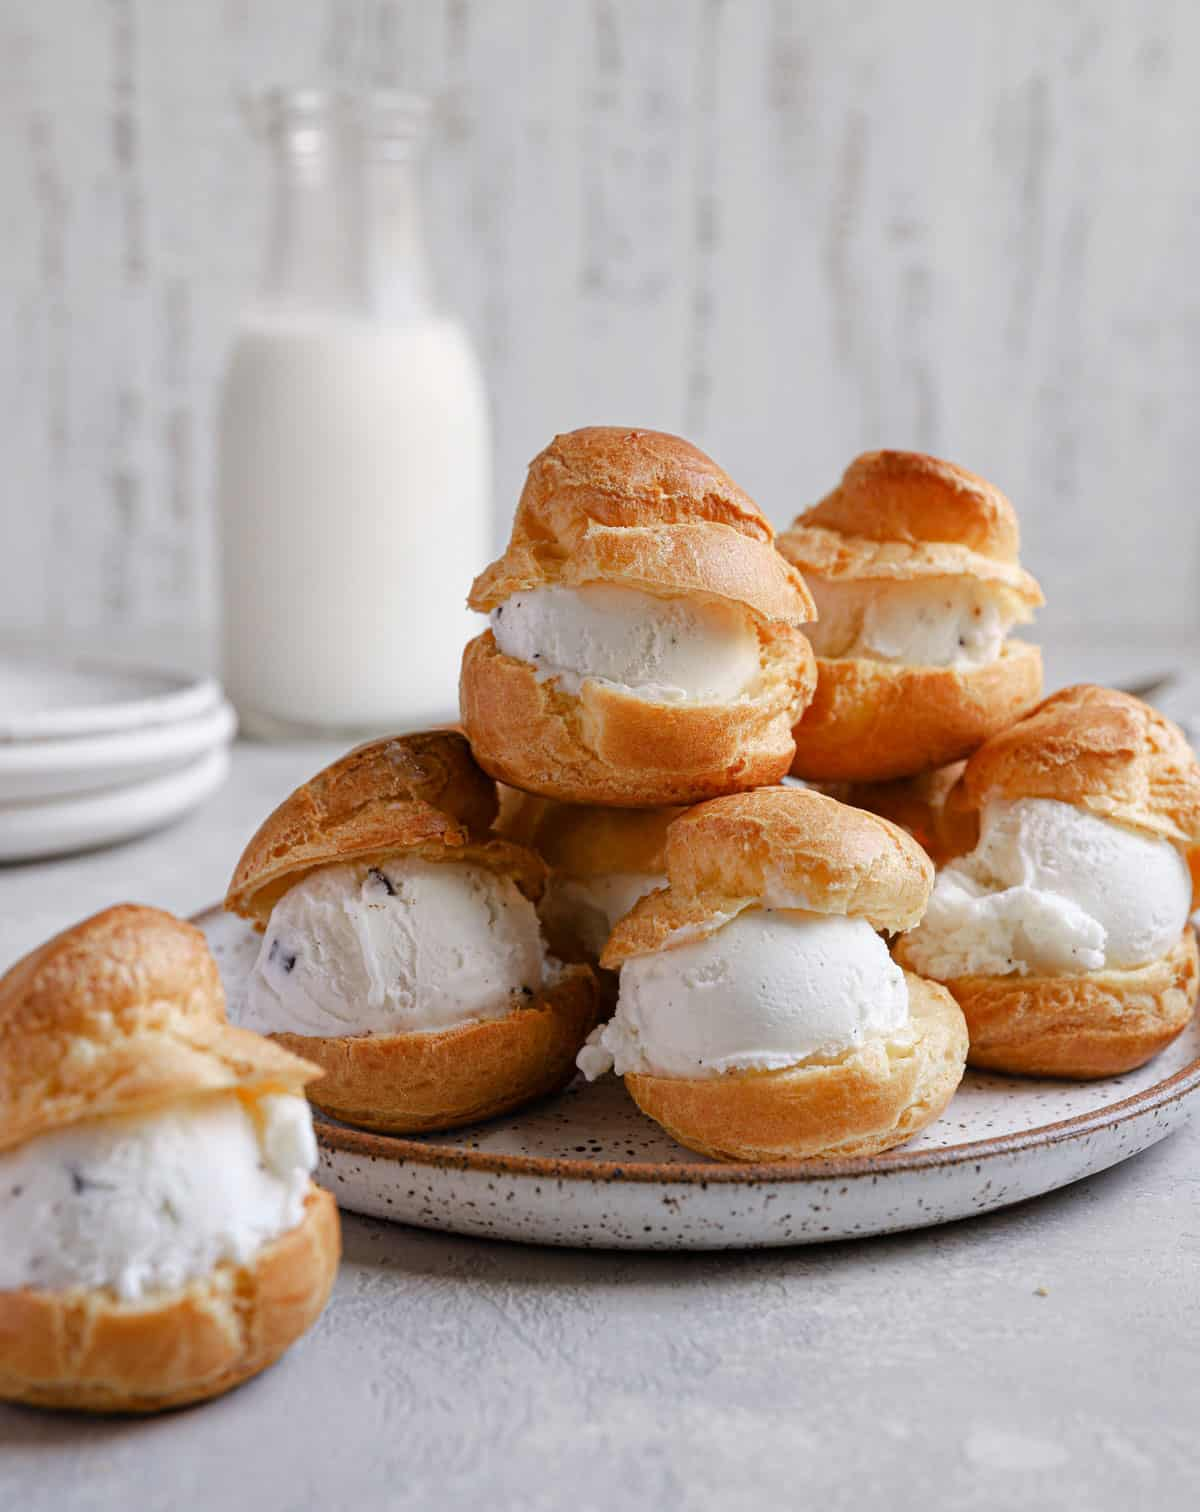 Pate a choux puffs split in half with ice cream in the middle.